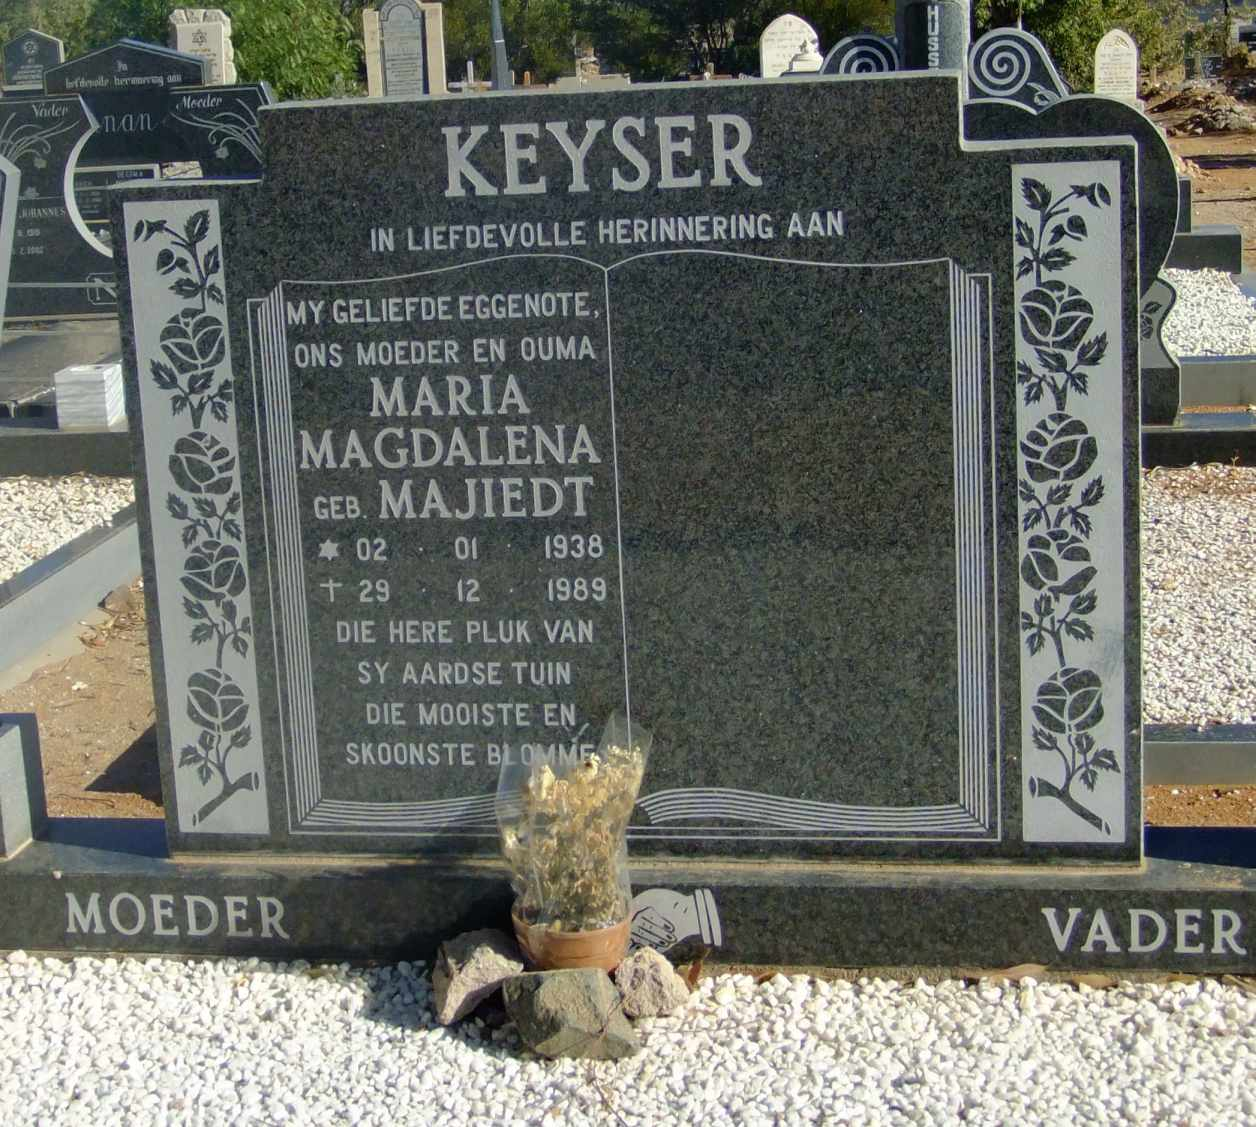 Keyser, Maria Magdalena born Majiedt 02 January 1938 died 29 December 1989